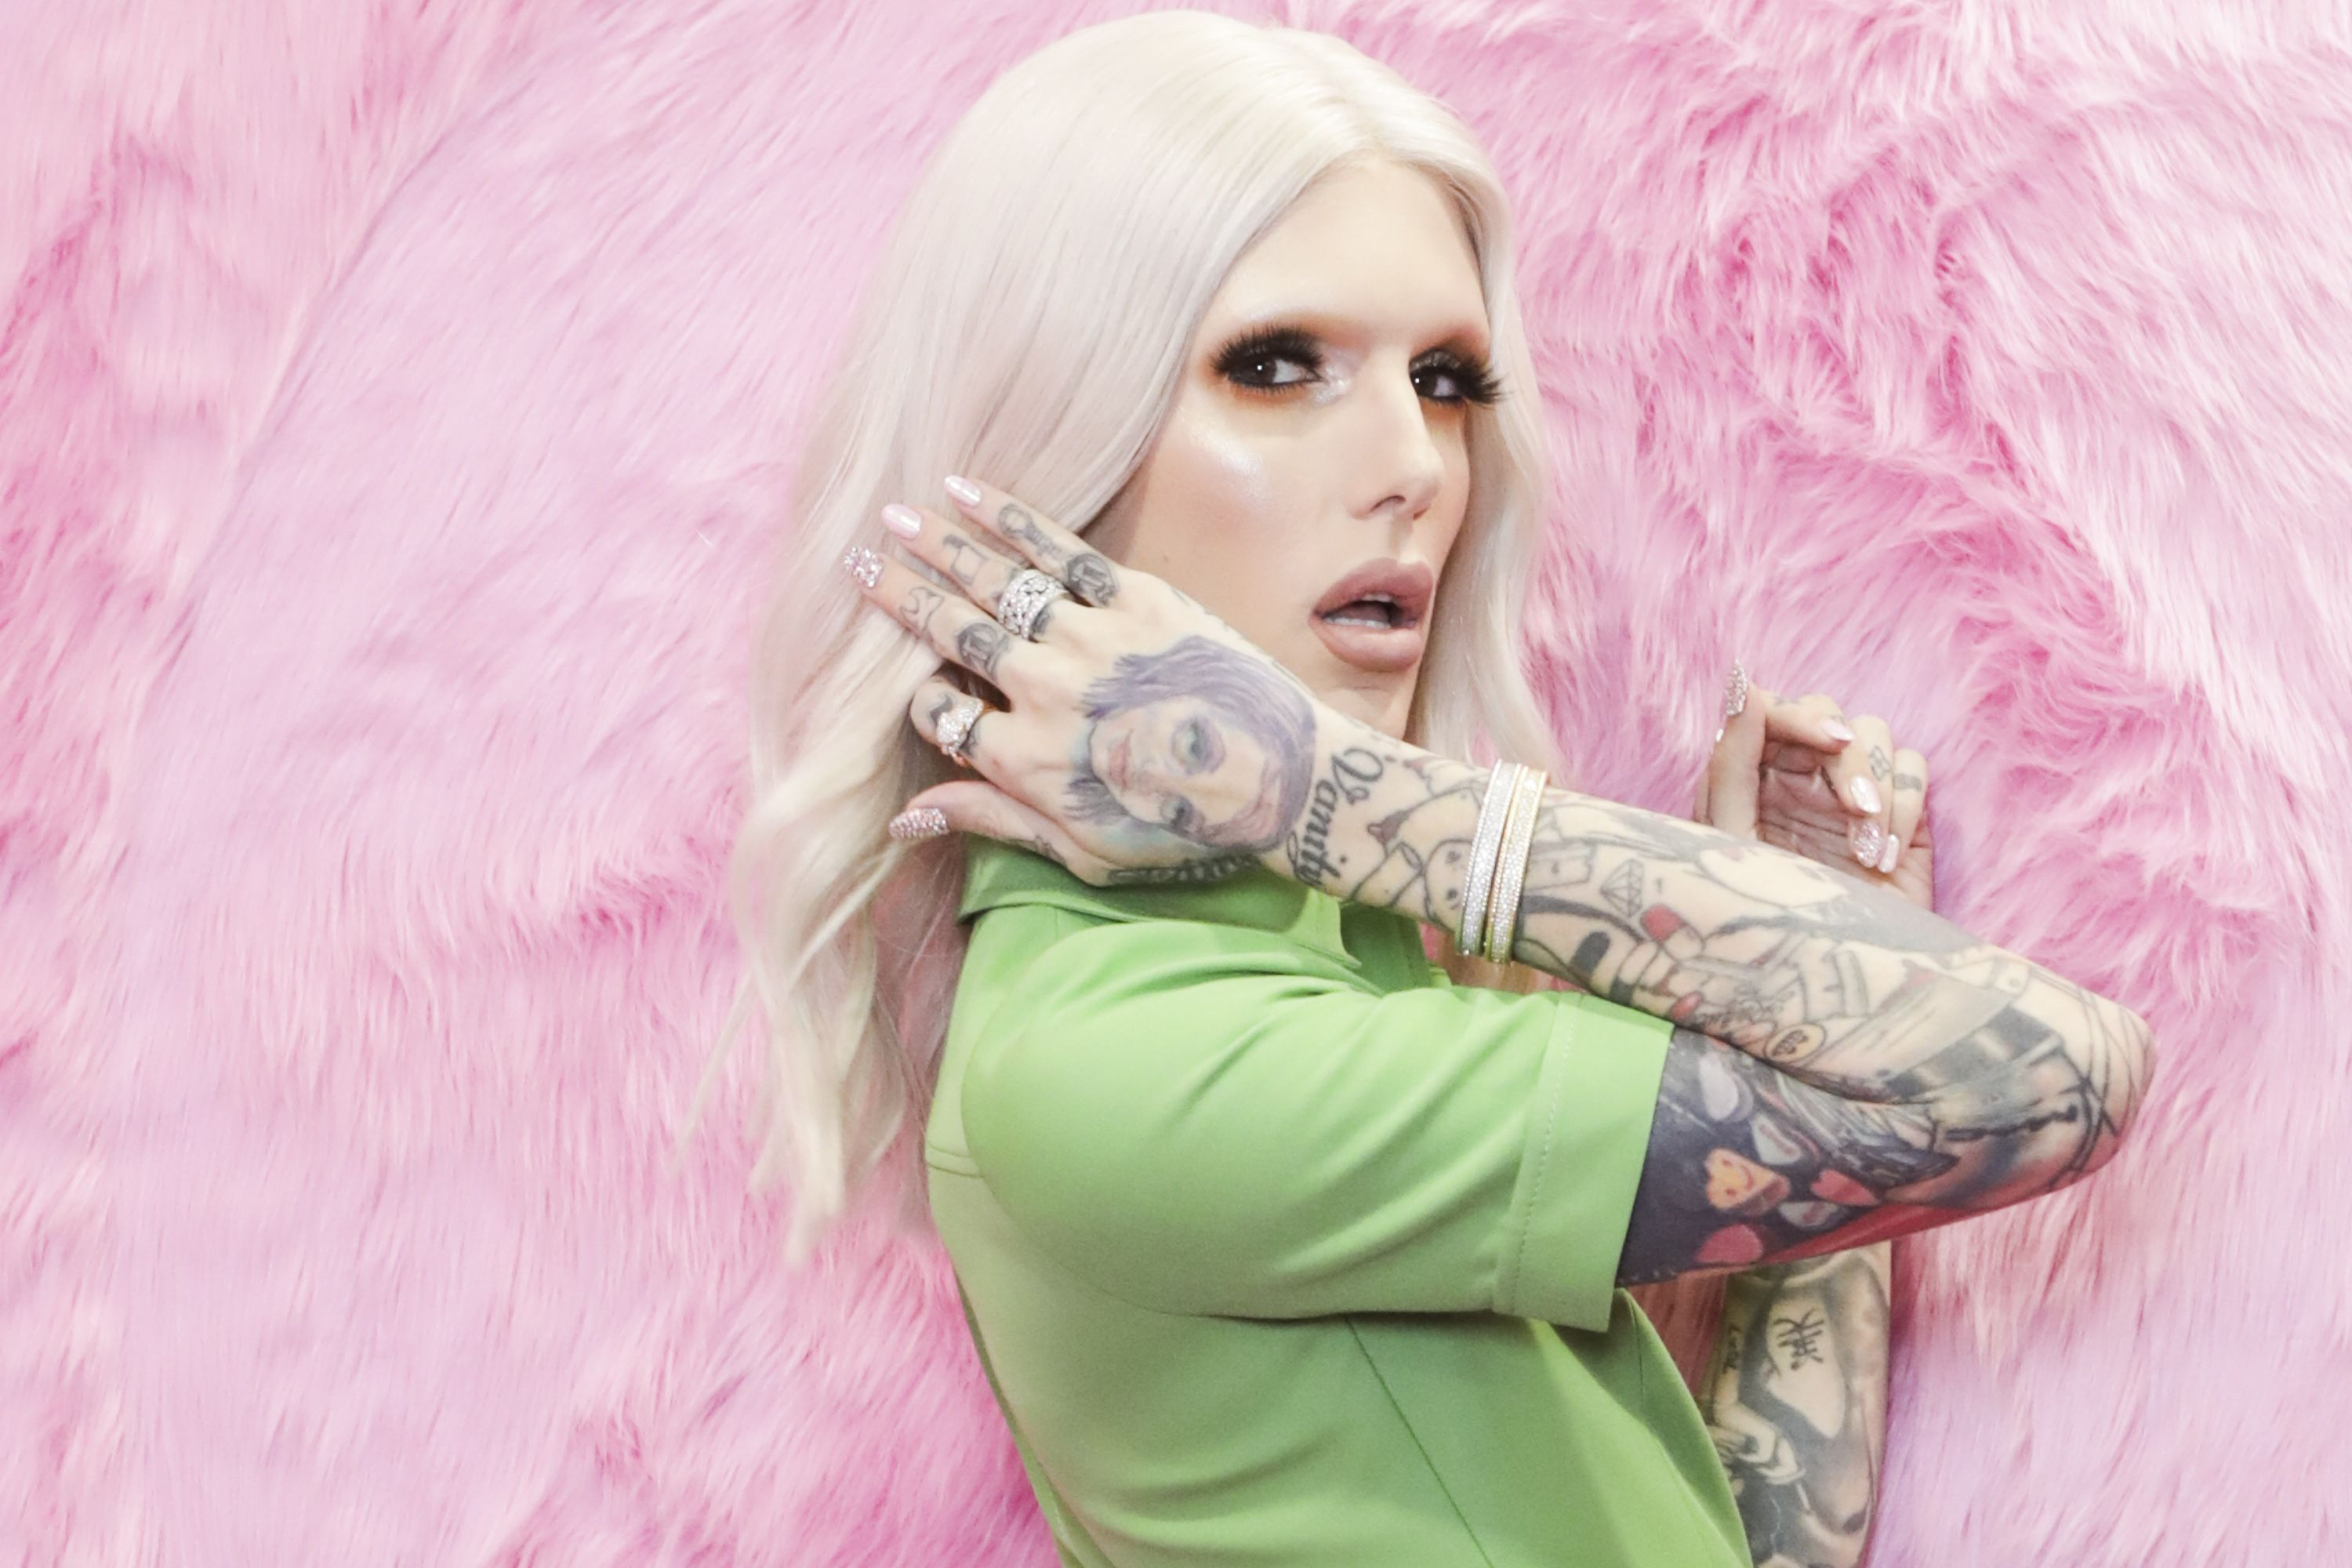 What Is Jeffree Star's Net Worth? - How Much Money Does Jeffree Star